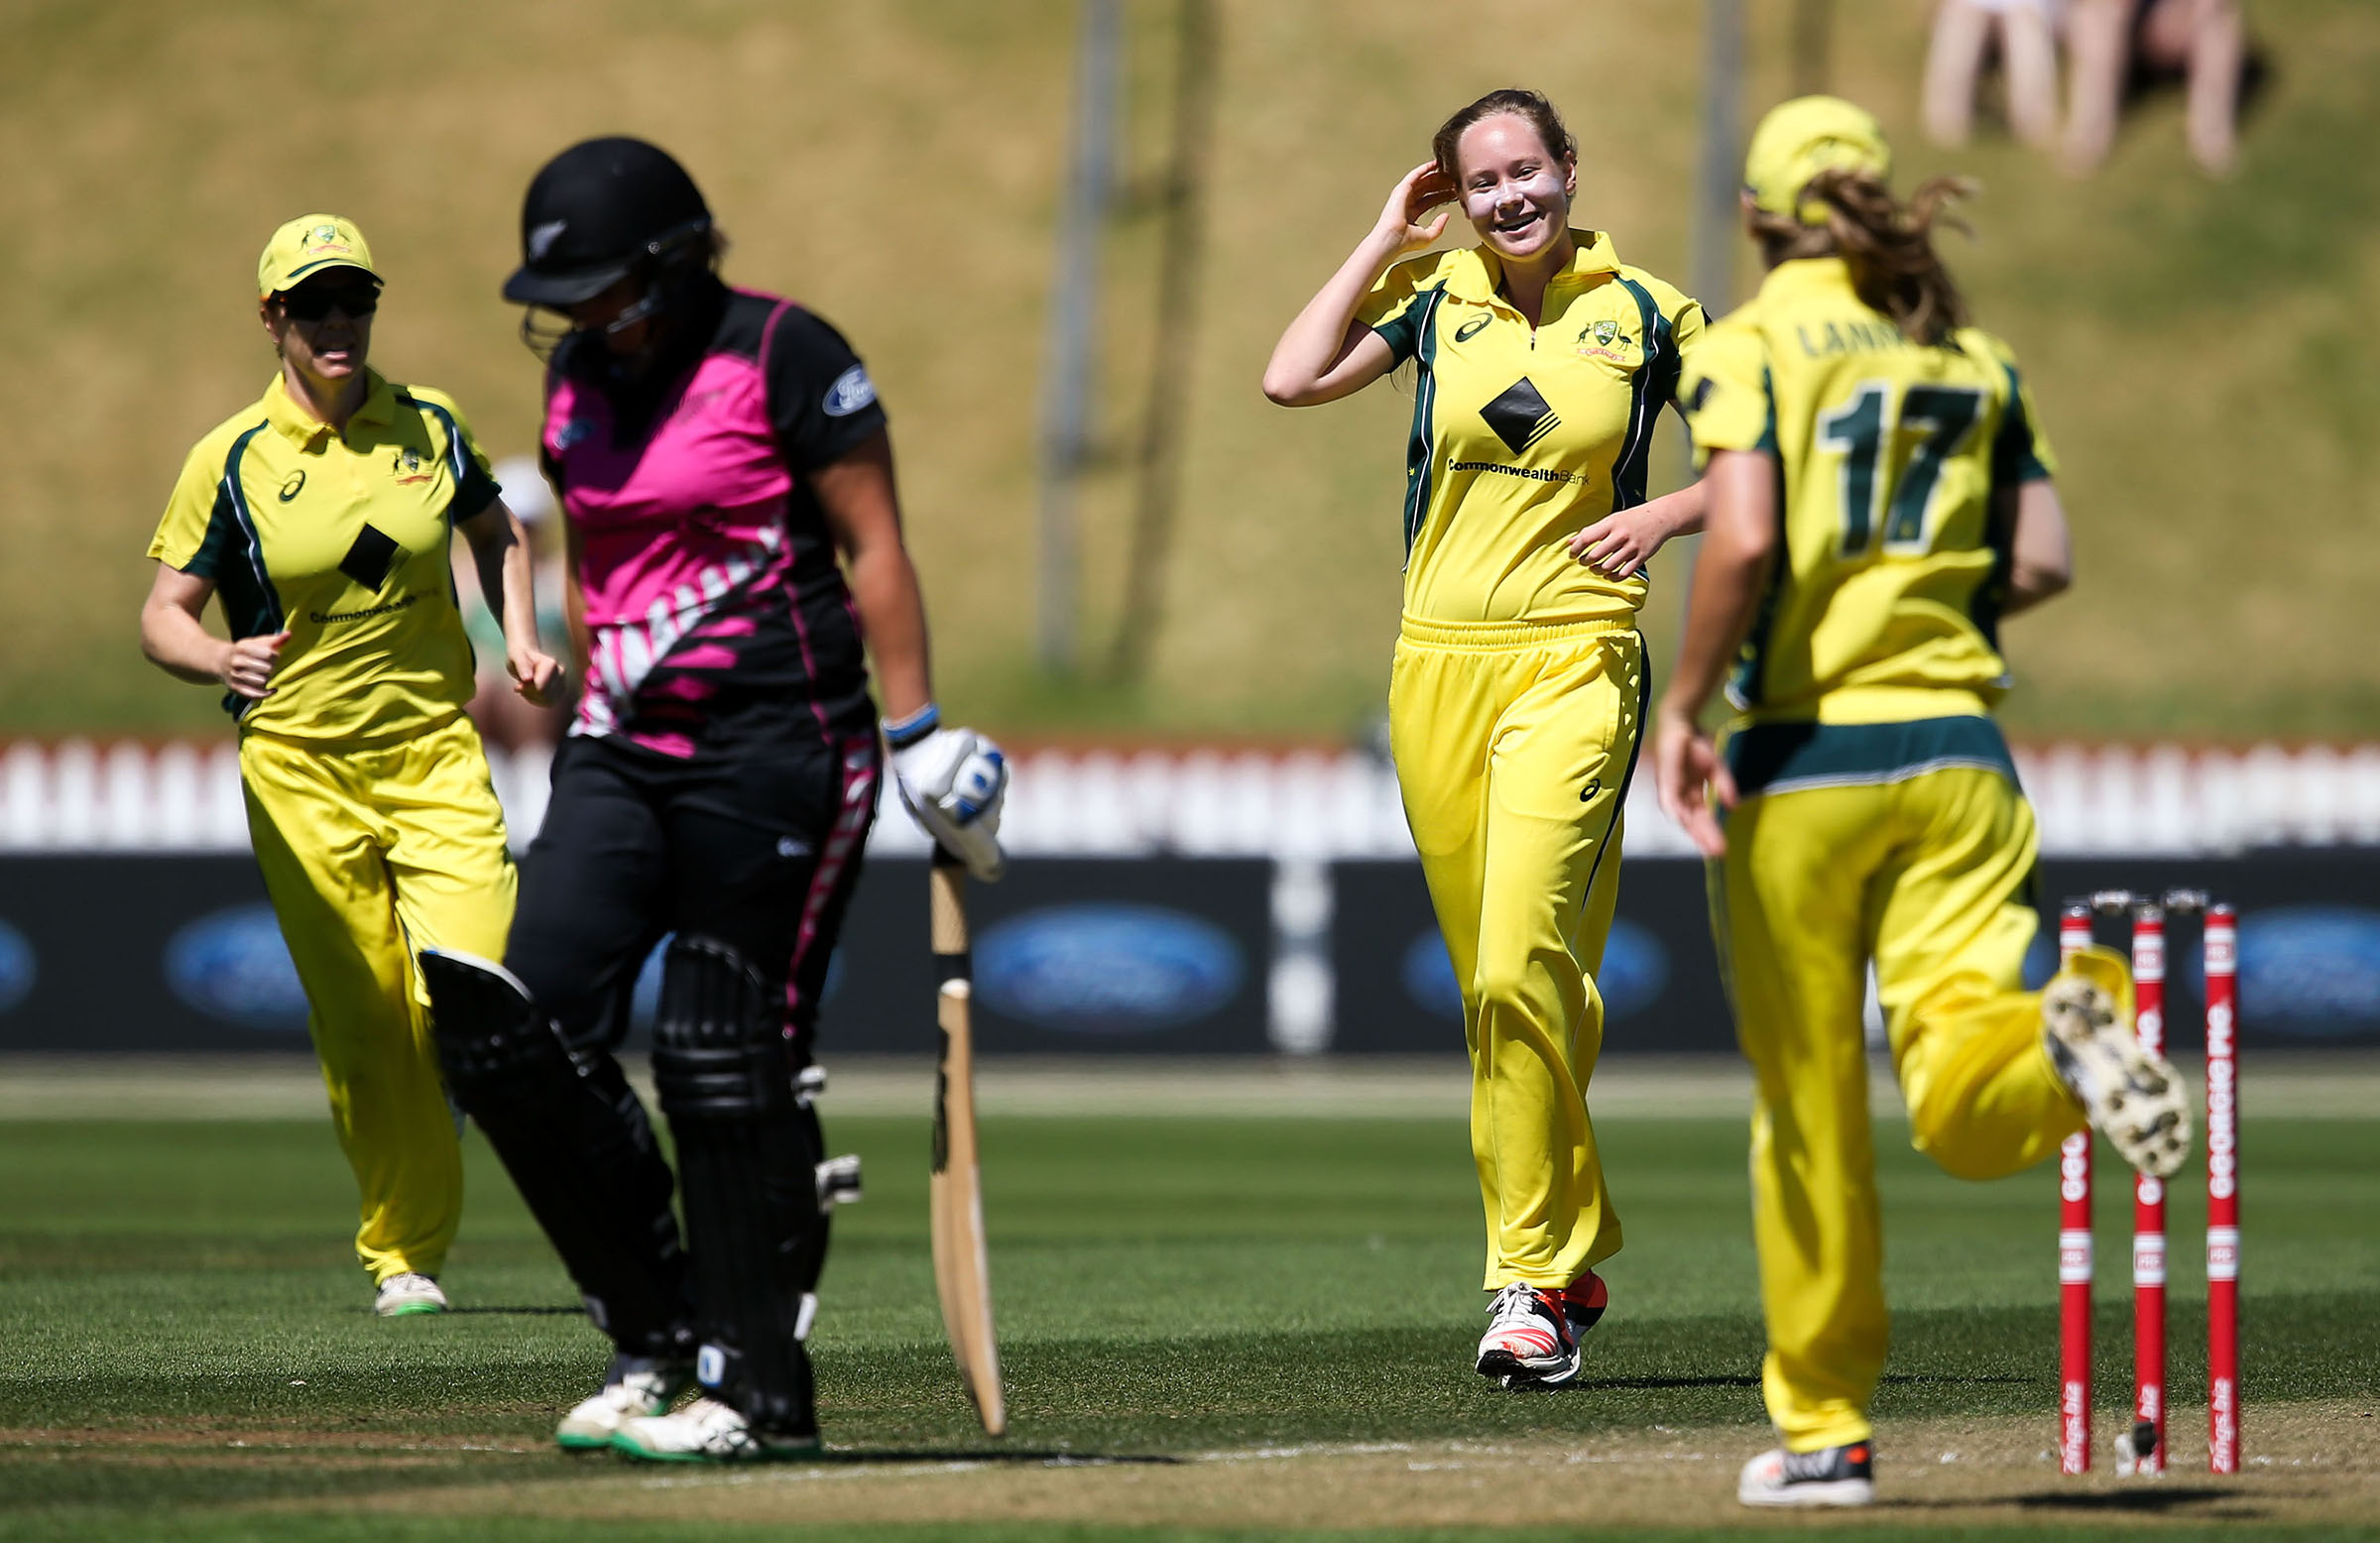 Cheatle celebrates a wicket against New Zealand in 2016 // Getty